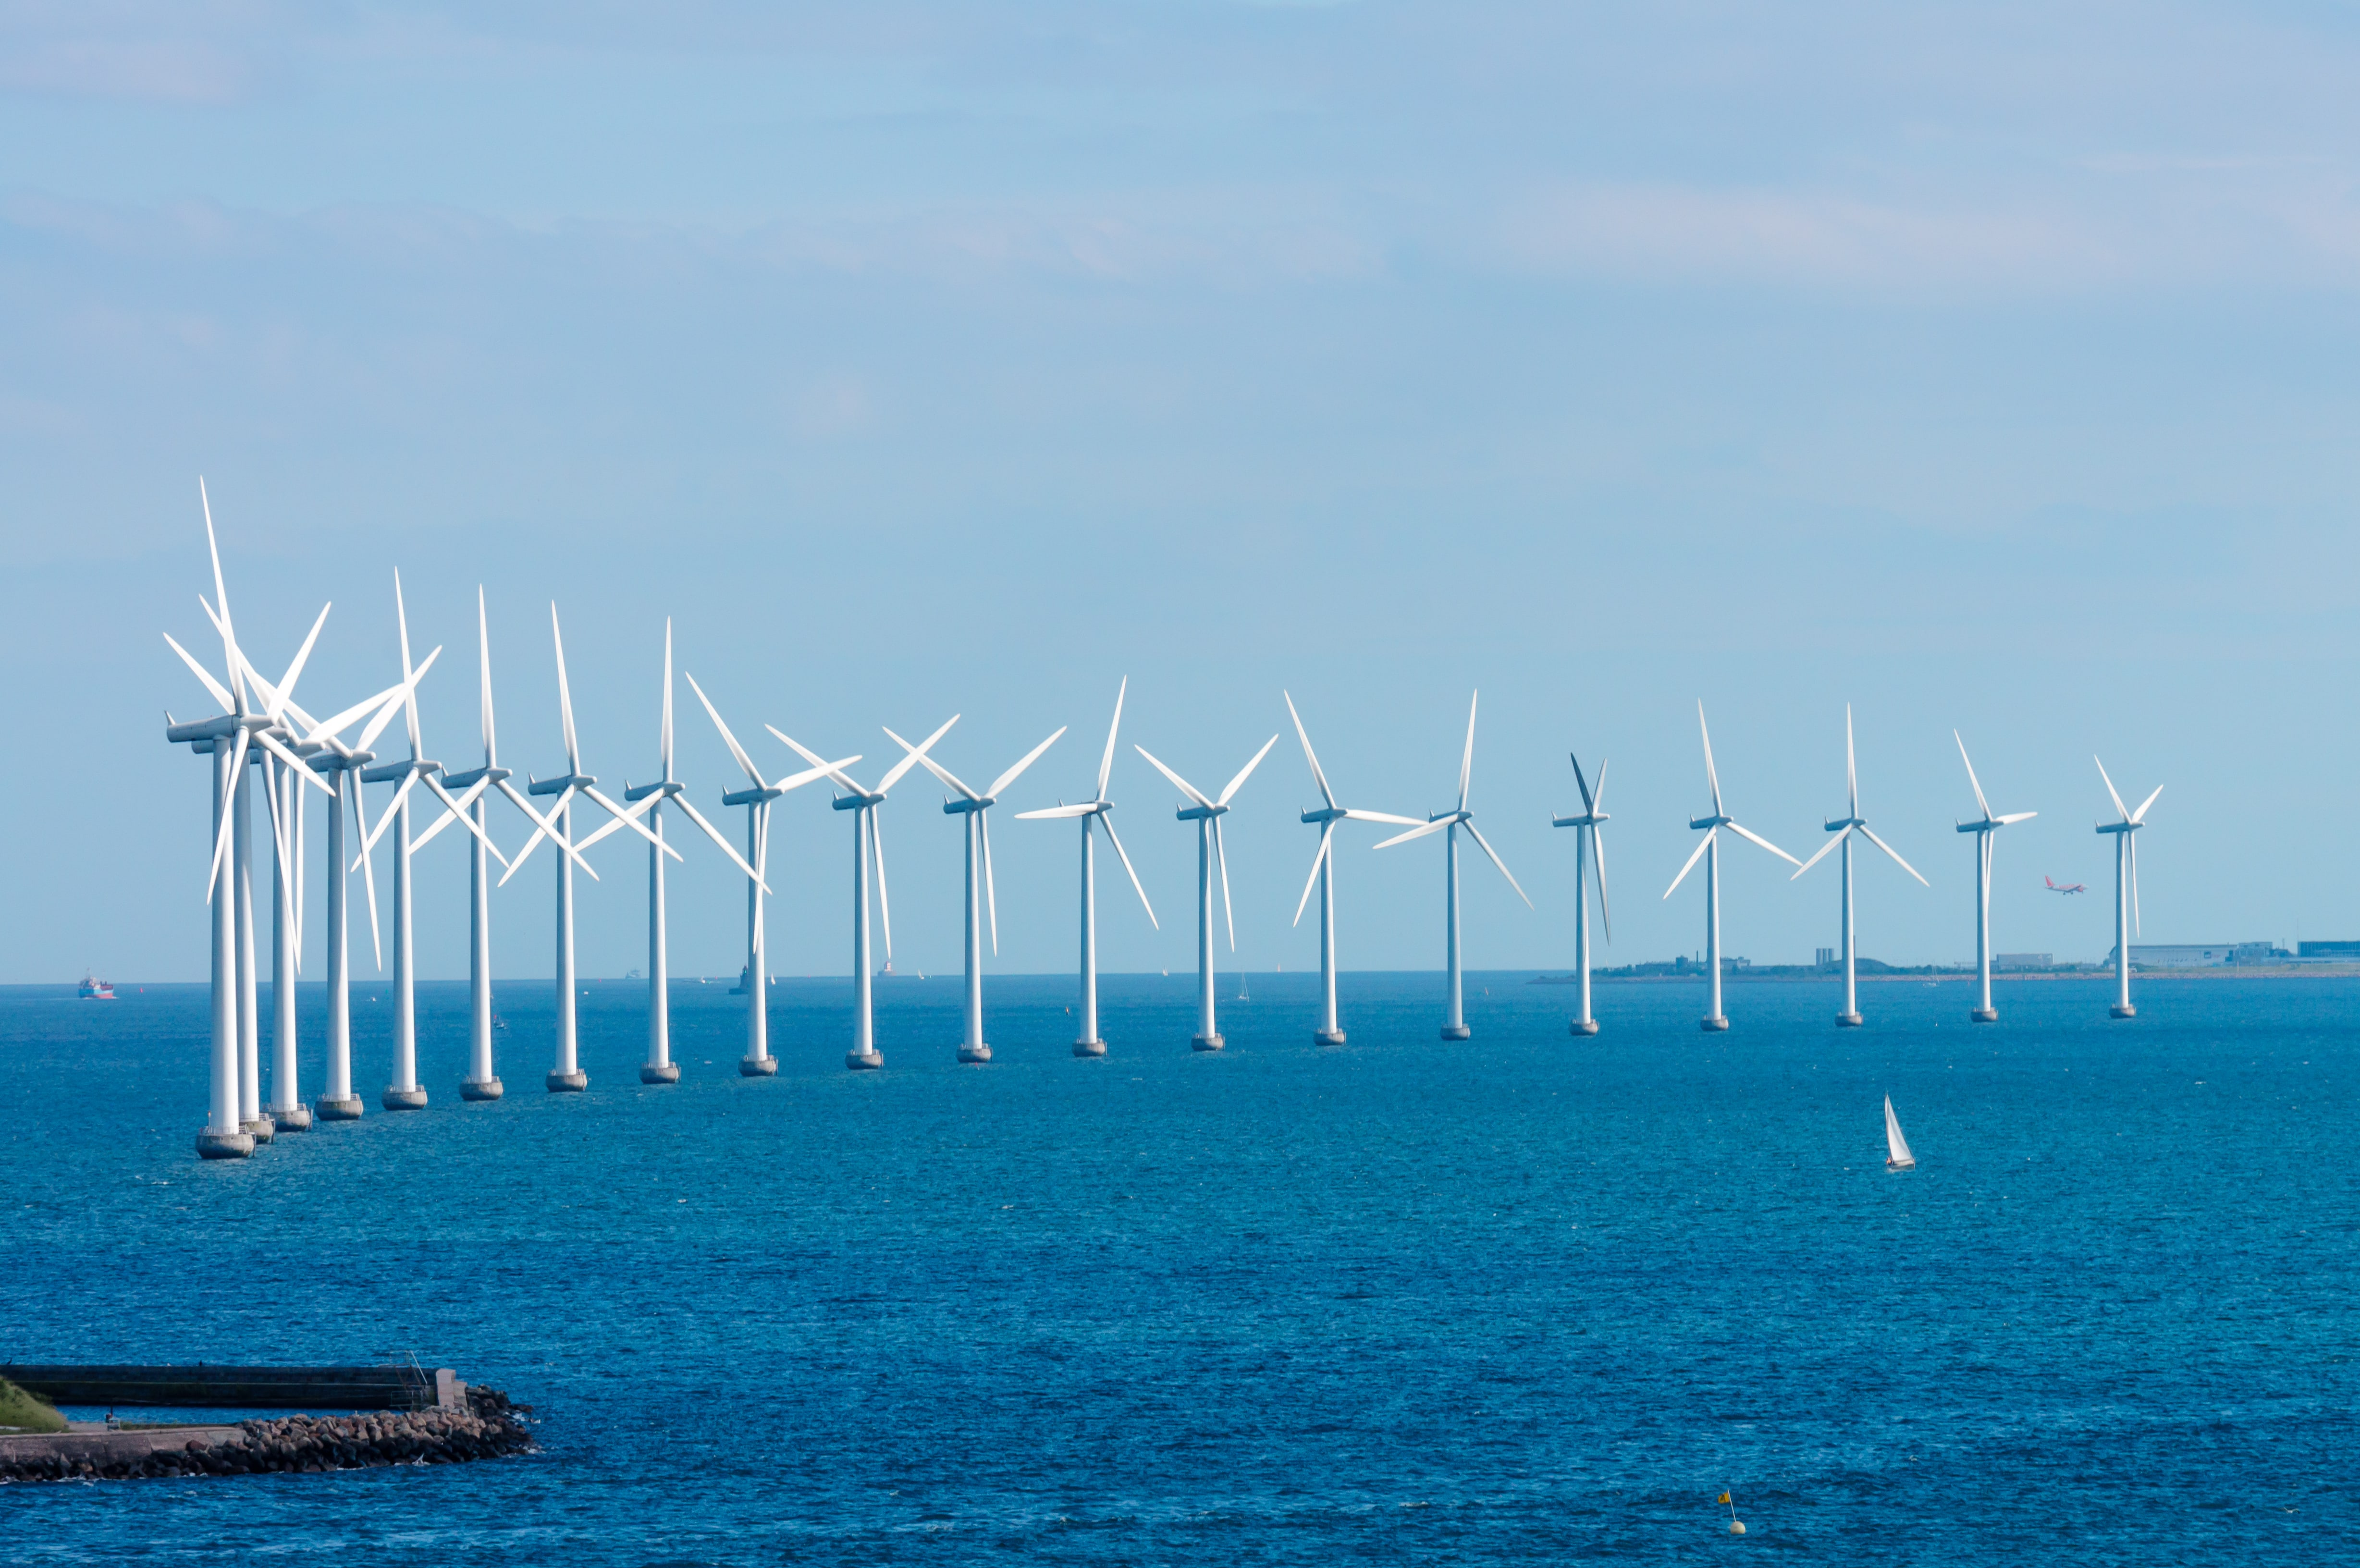 Offshore-wind-farm-Renewable-Energy-Airswift-min